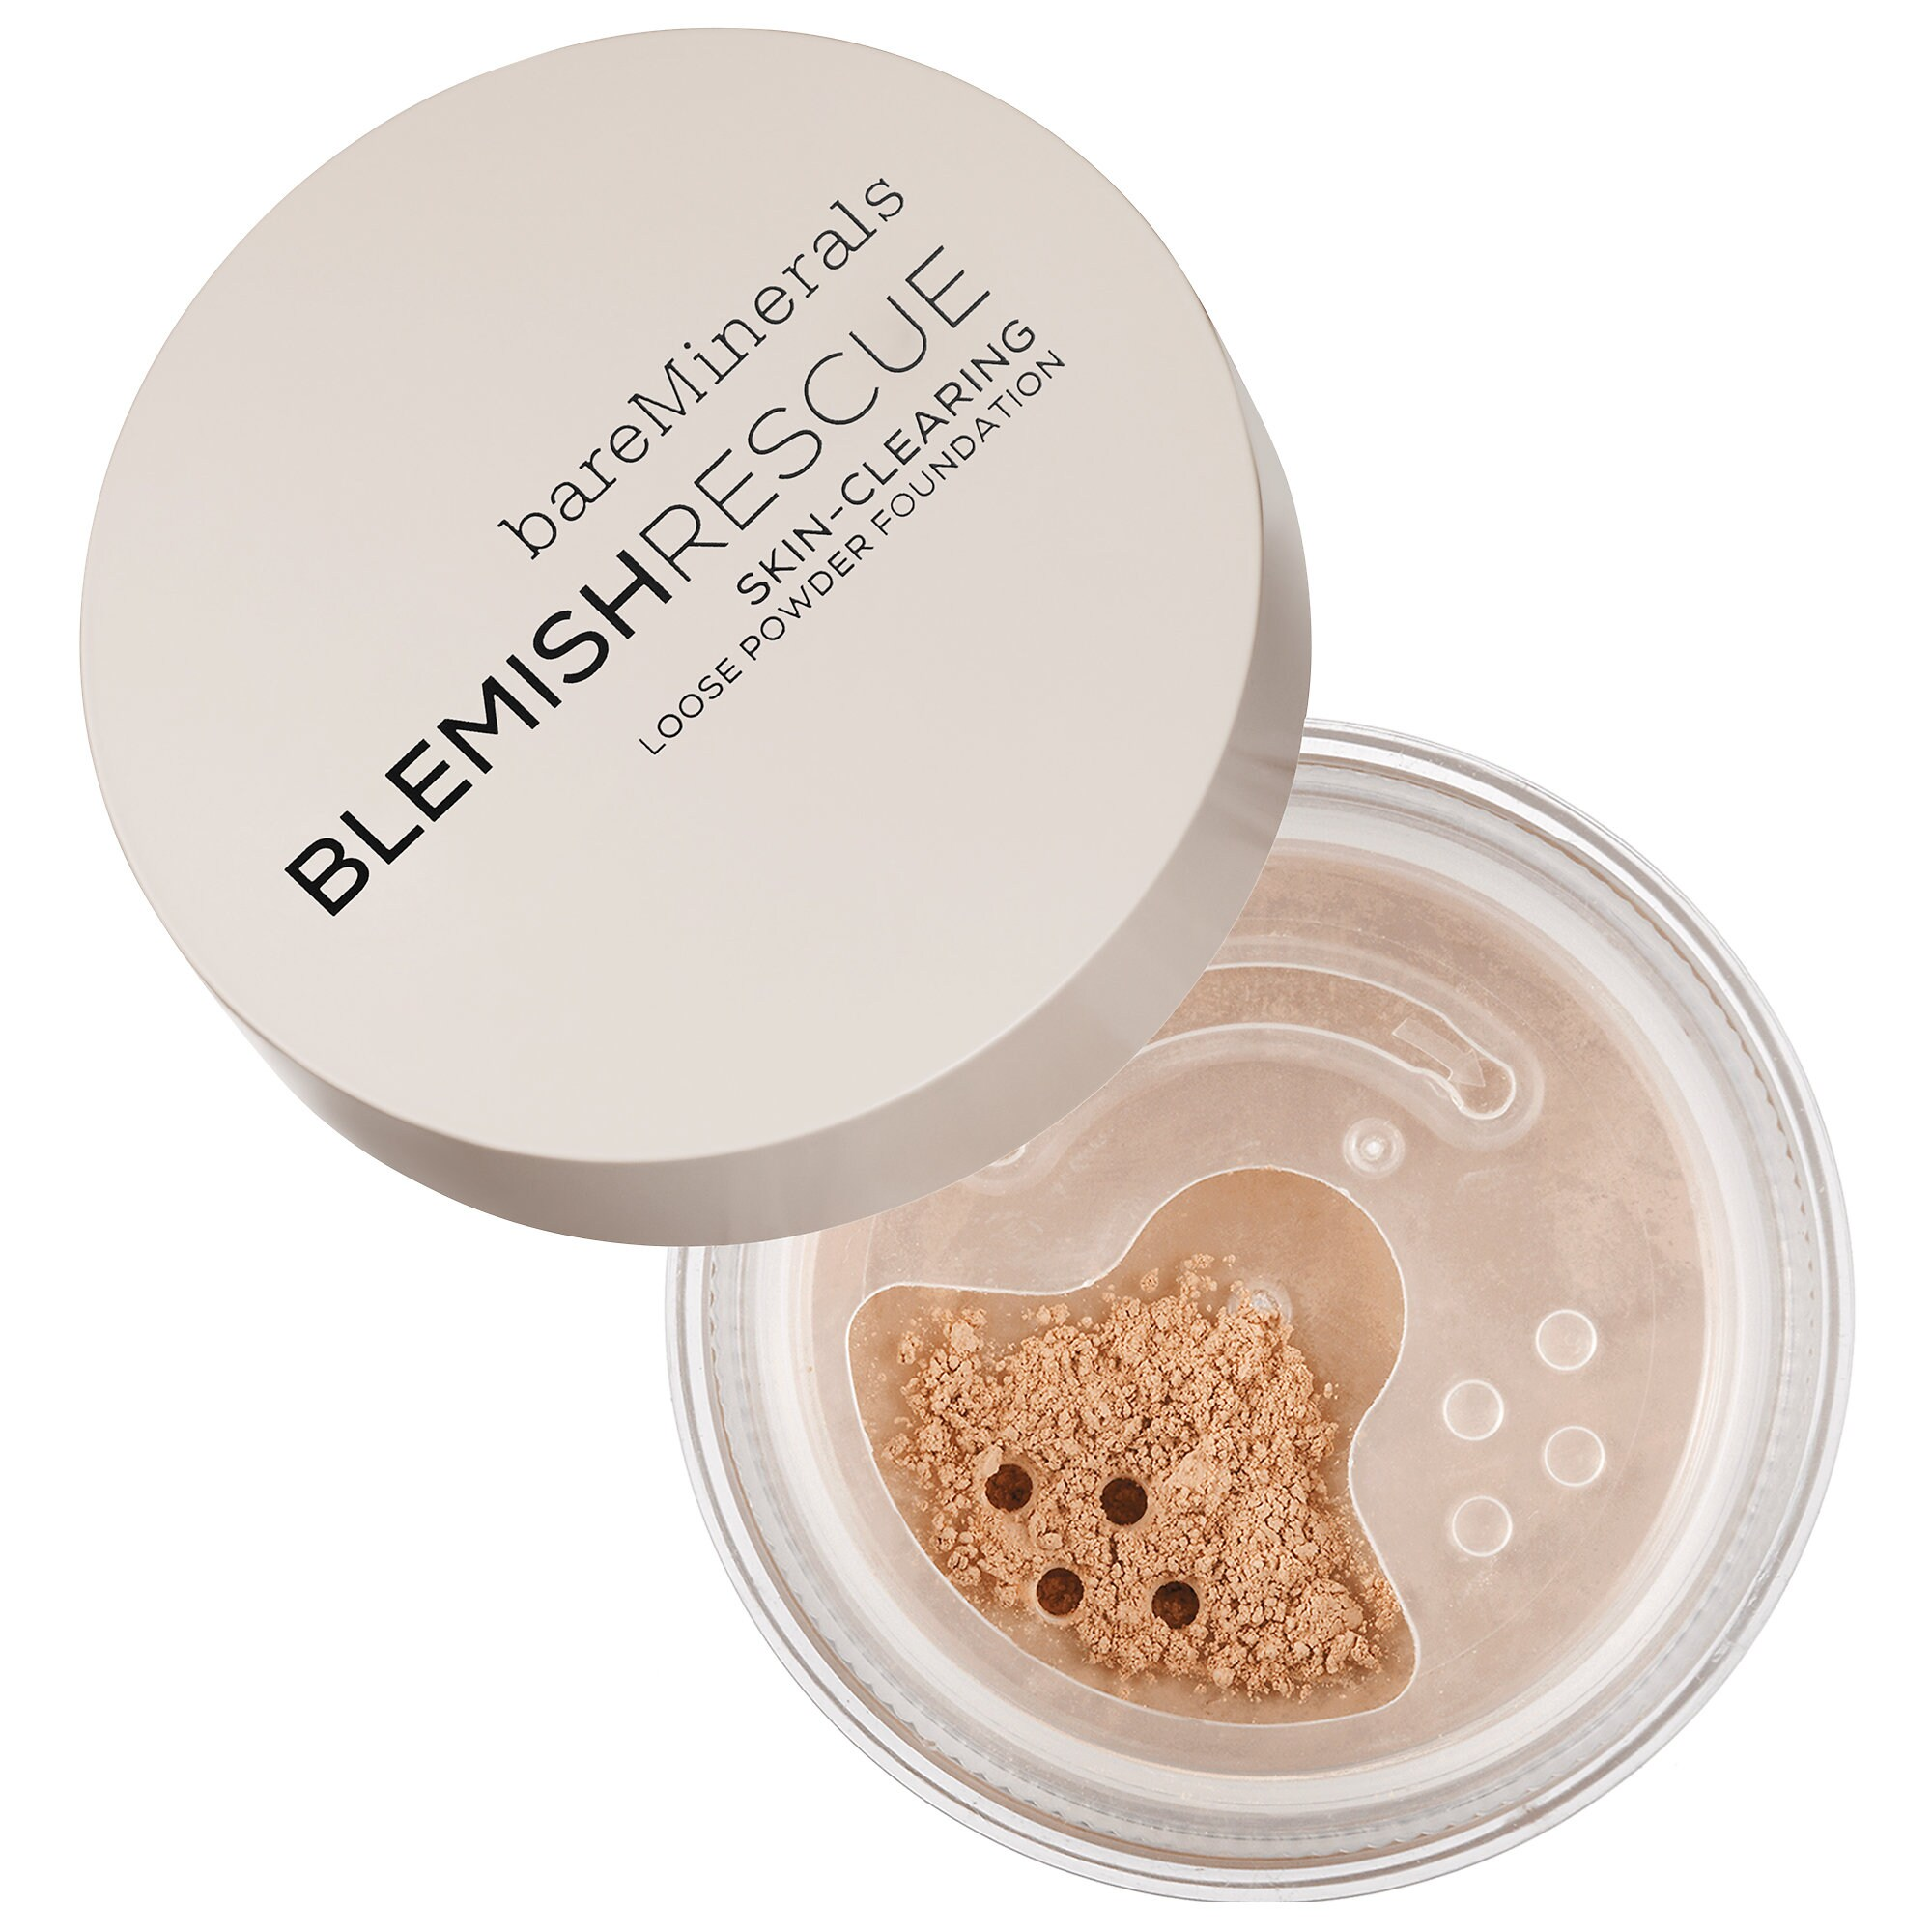 Bareminerals - Blemish Rescue Skin-Clearing Loose Powder Foundation